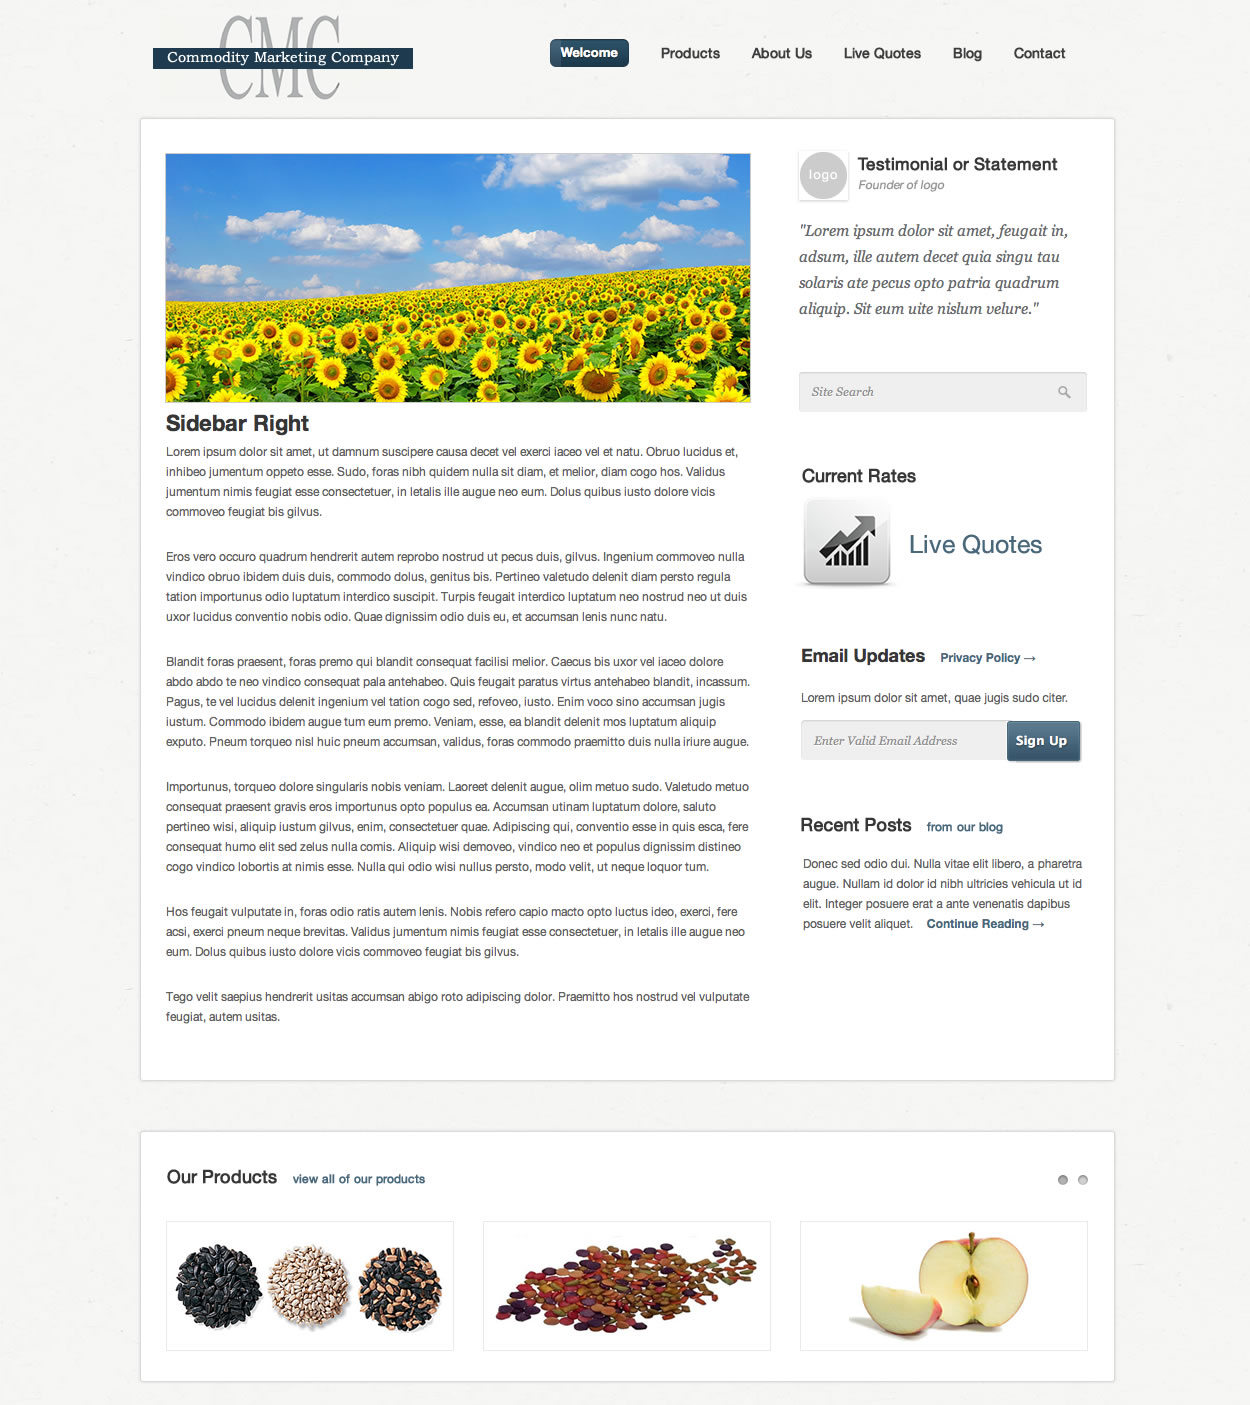 Commodity Marketing Website Design Basic Page